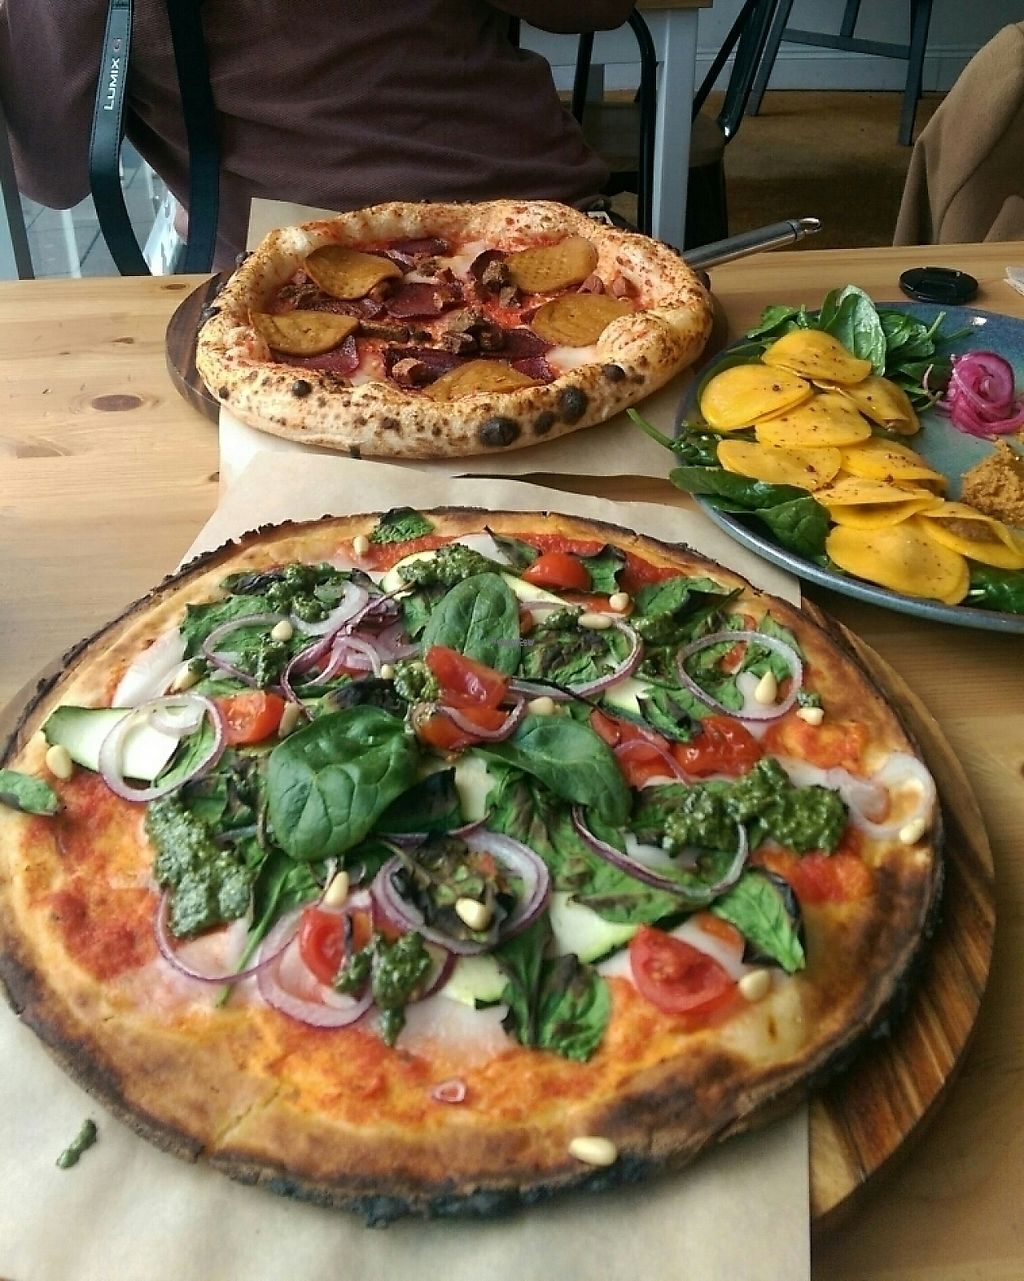 "Photo of Purezza  by <a href=""/members/profile/Melissaj1990"">Melissaj1990</a> <br/>Gluten free pizza <br/> January 1, 2017  - <a href='/contact/abuse/image/62124/206953'>Report</a>"